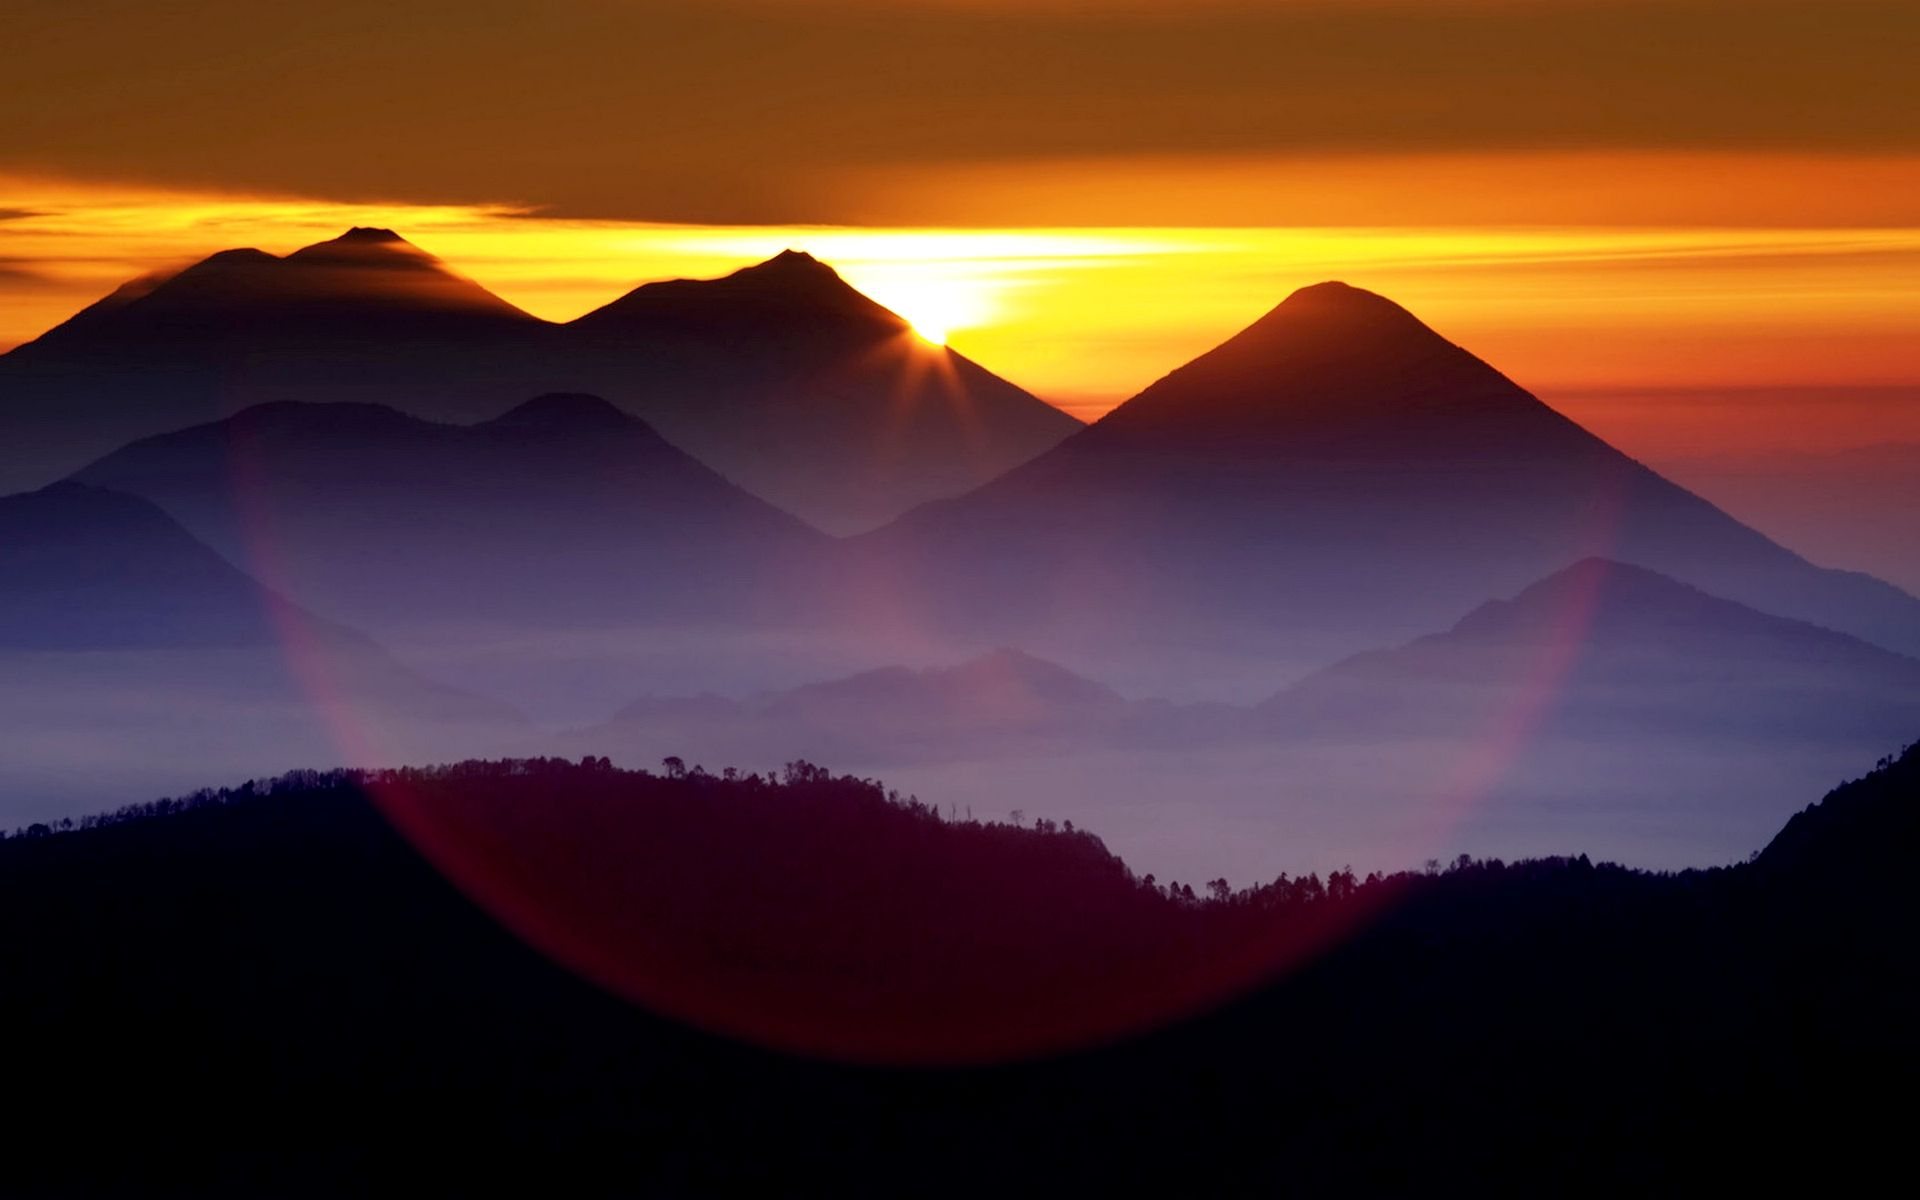 Download Desktop Wallpaper Sunset Over The Mountains Waterfall Landscape Mountain Sunset Sunset Images